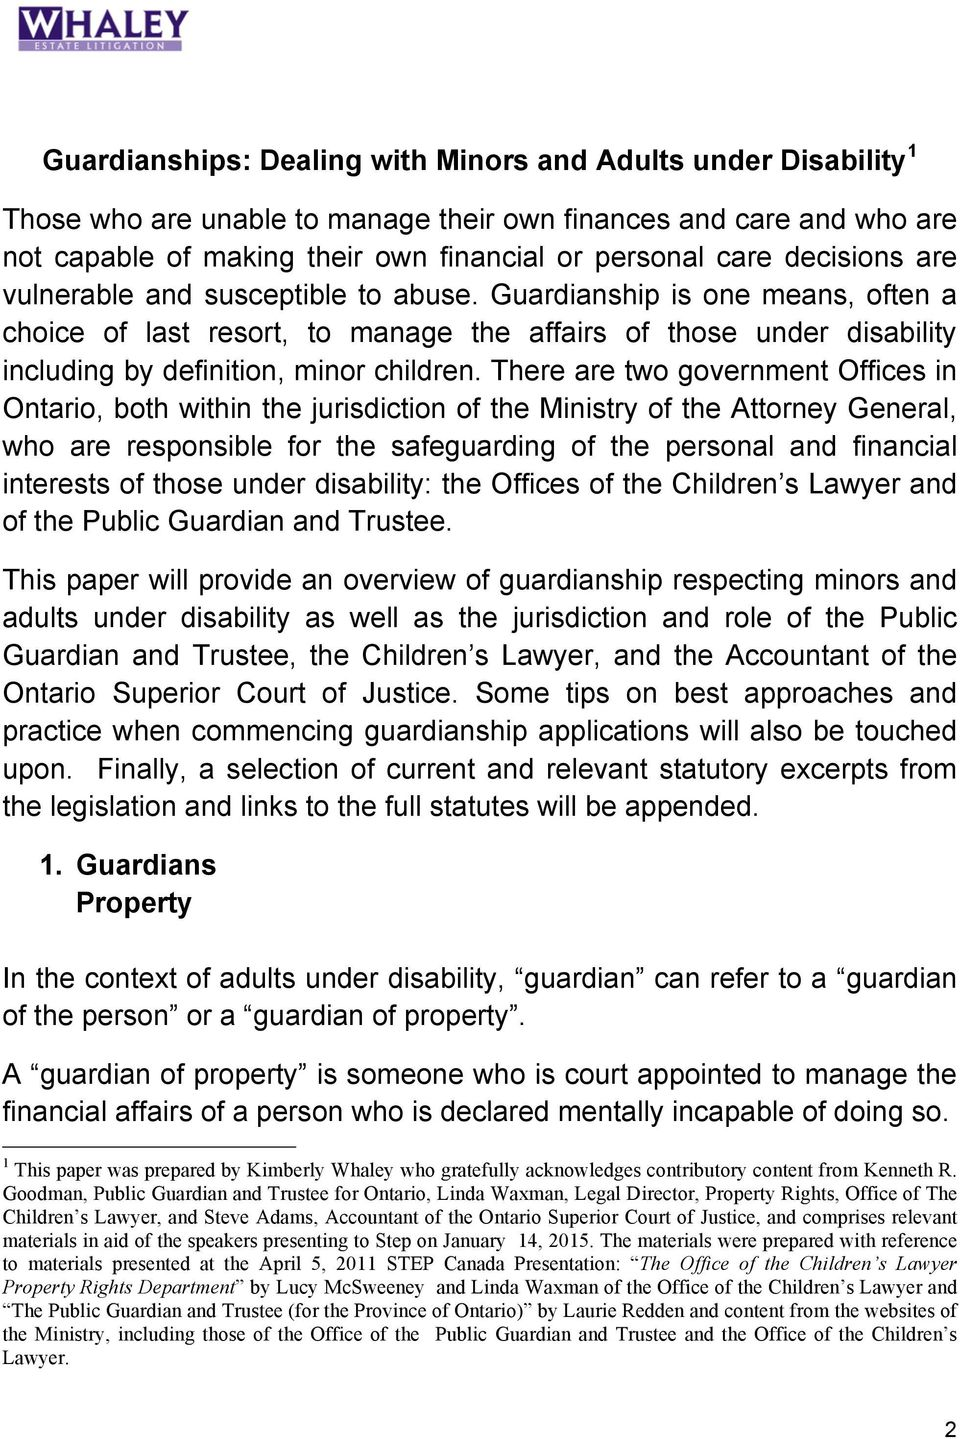 There are two government Offices in Ontario, both within the jurisdiction of the Ministry of the Attorney General, who are responsible for the safeguarding of the personal and financial interests of